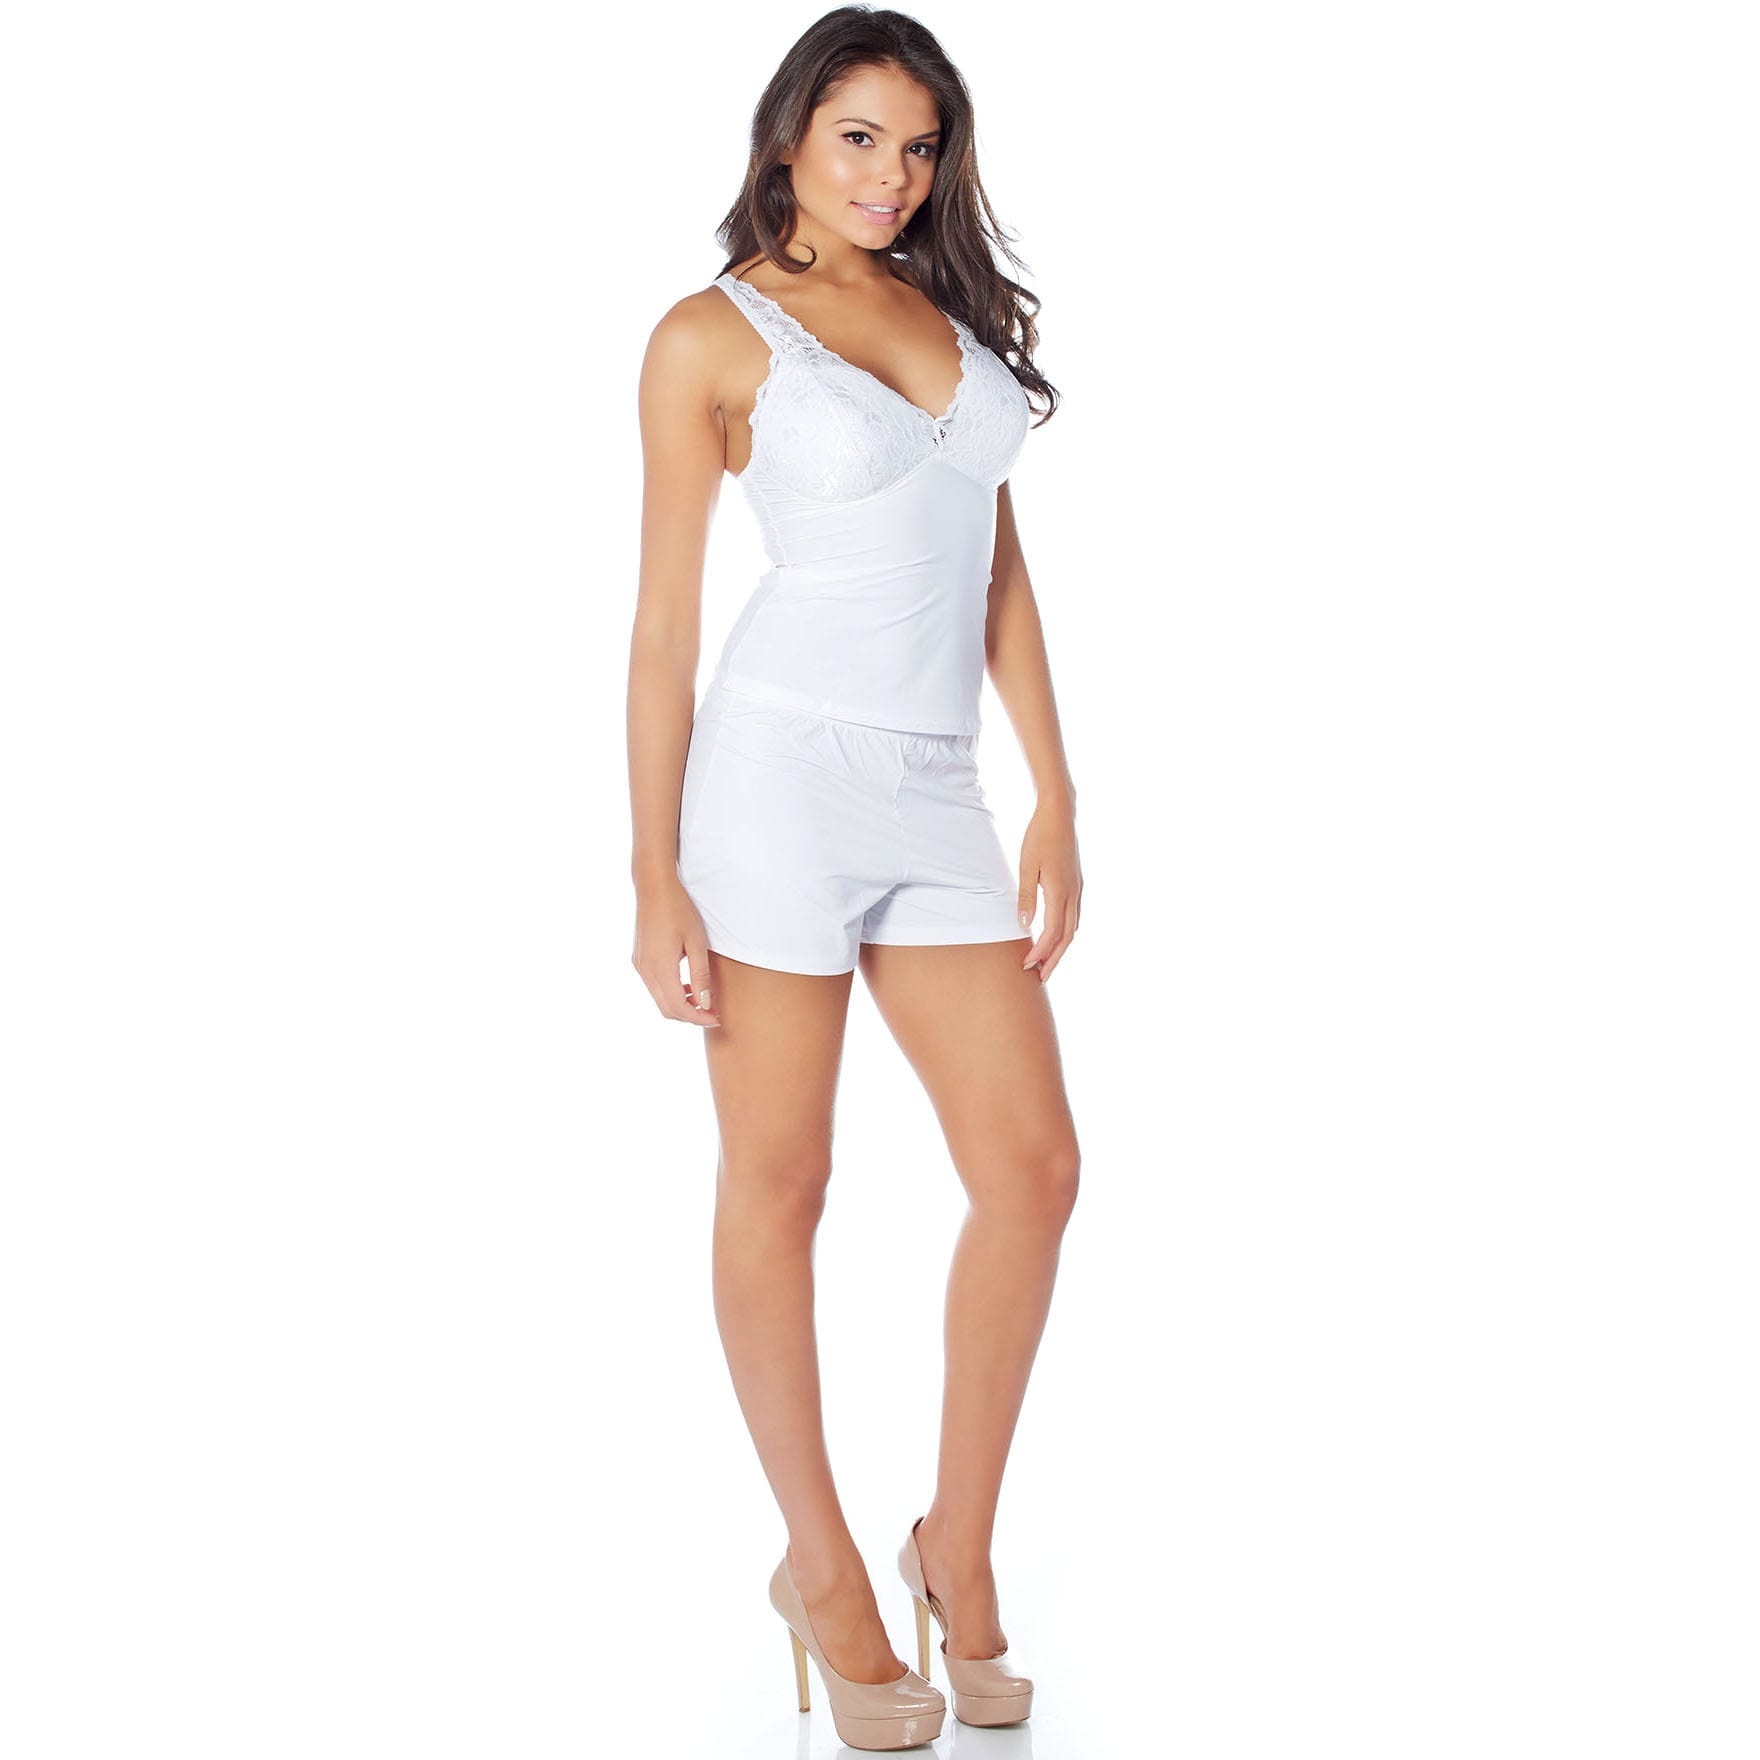 c83cd75653 Shop Rhonda Shear Sweet Secret Butterknit Cami and Shorts Set - Free  Shipping On Orders Over  45 - Overstock.com - 11914871